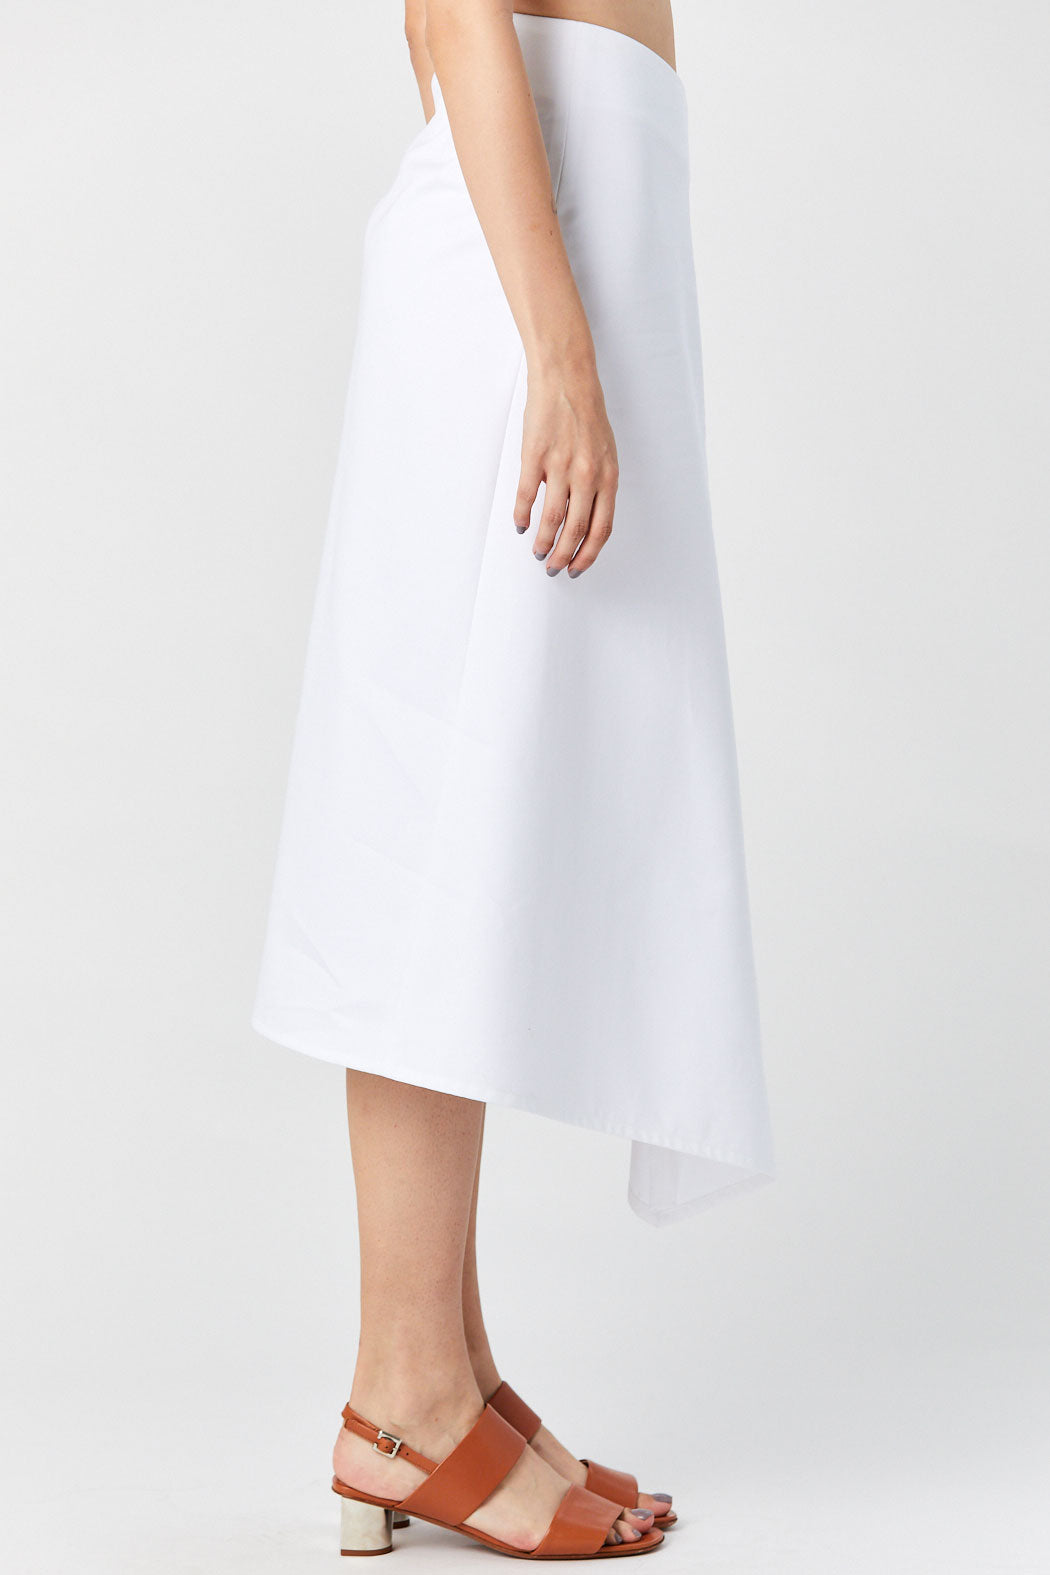 Atlantique Ascoli - Jupe Sharp Skirt, White